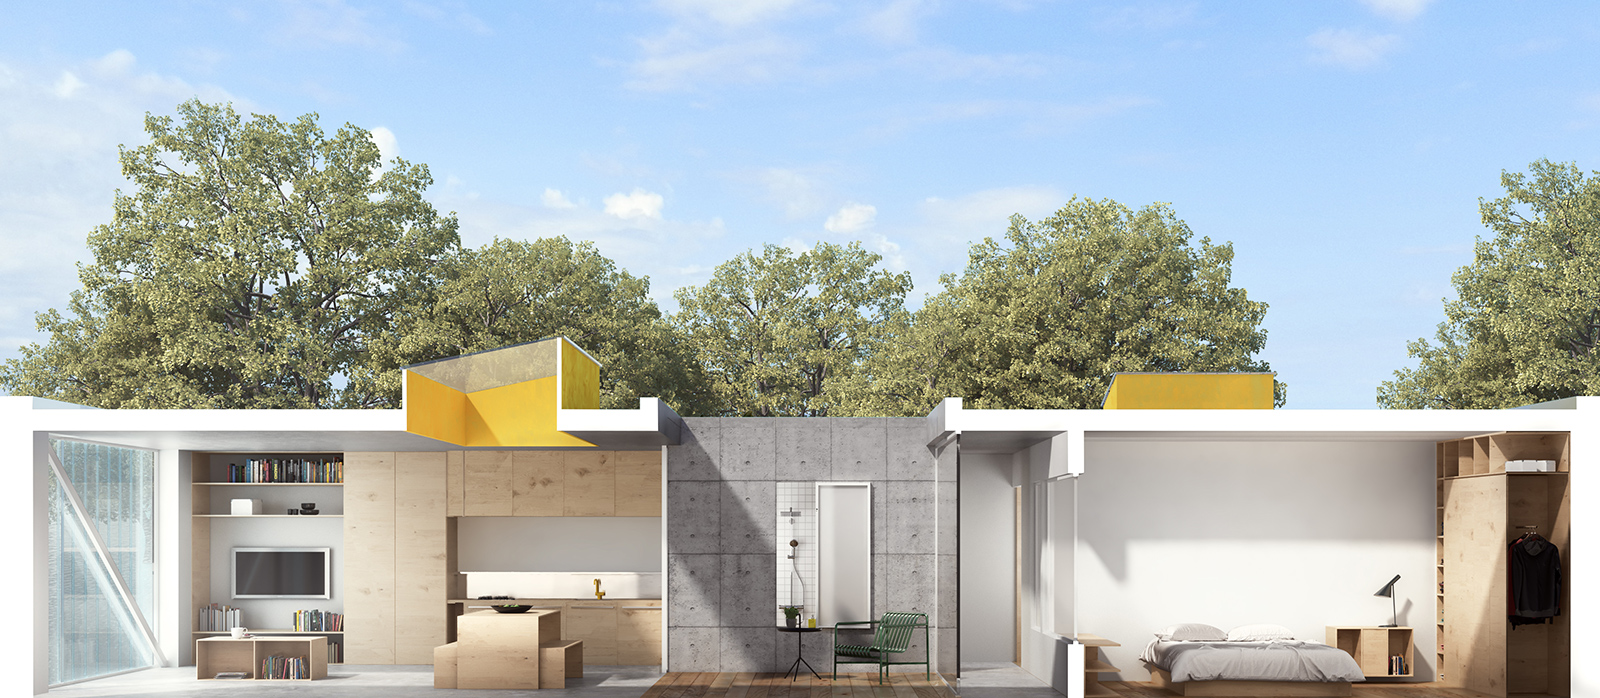 Property start-up Cube Haus taps award-winning British architects to create 'infill' prefabs